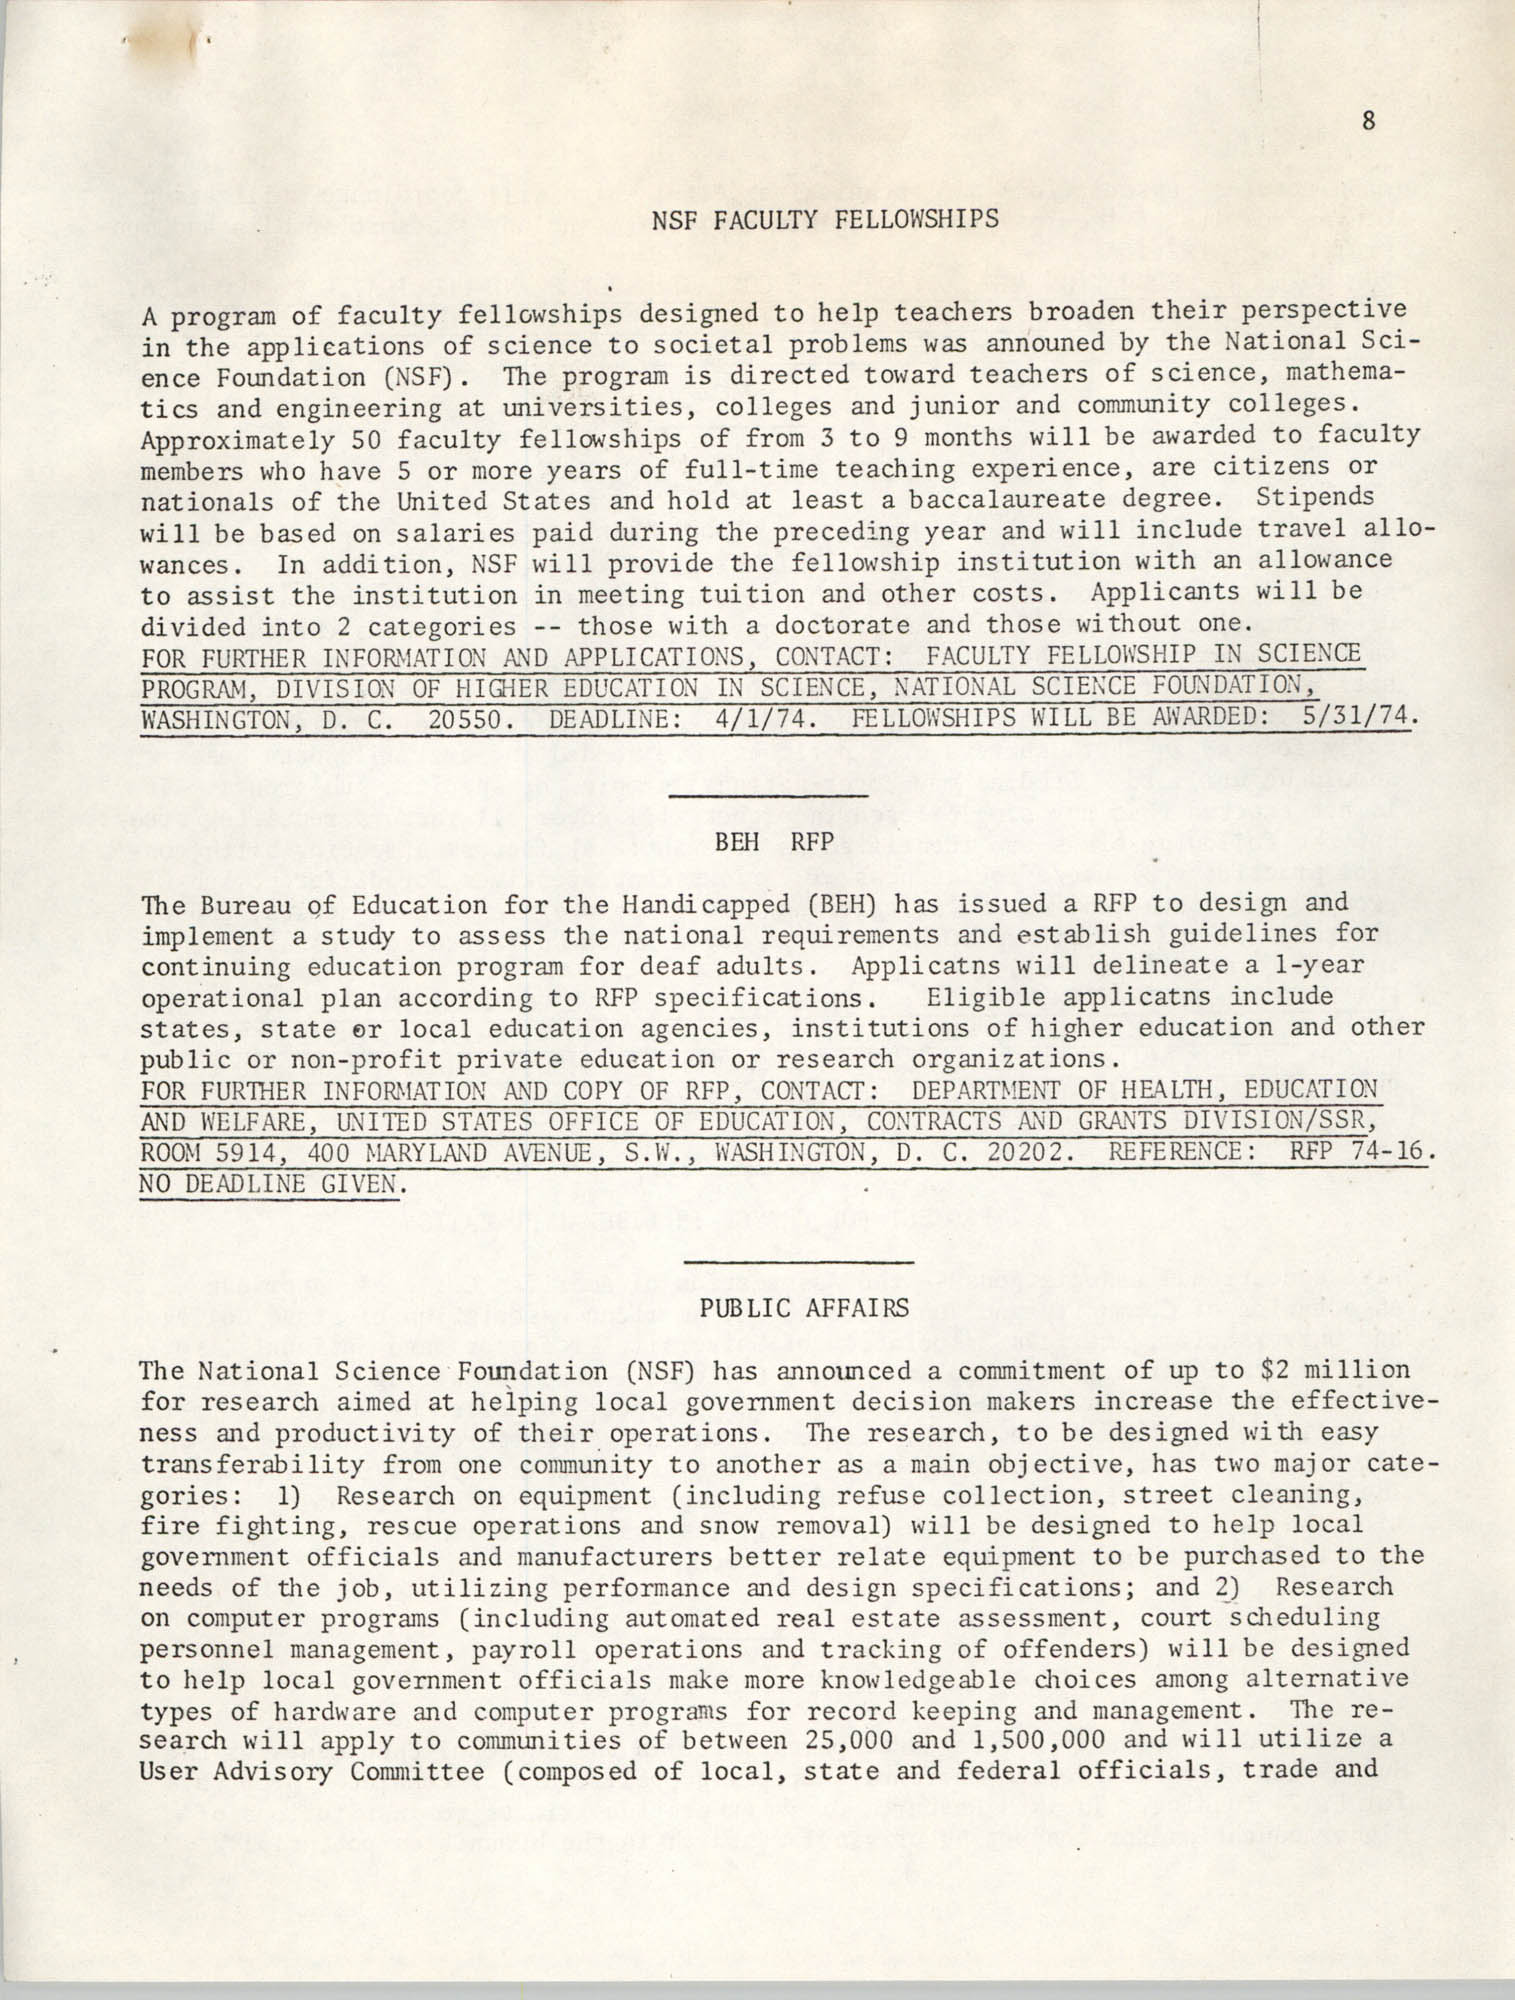 SHARE, Volume II, Number 3, March 1974, Page 8